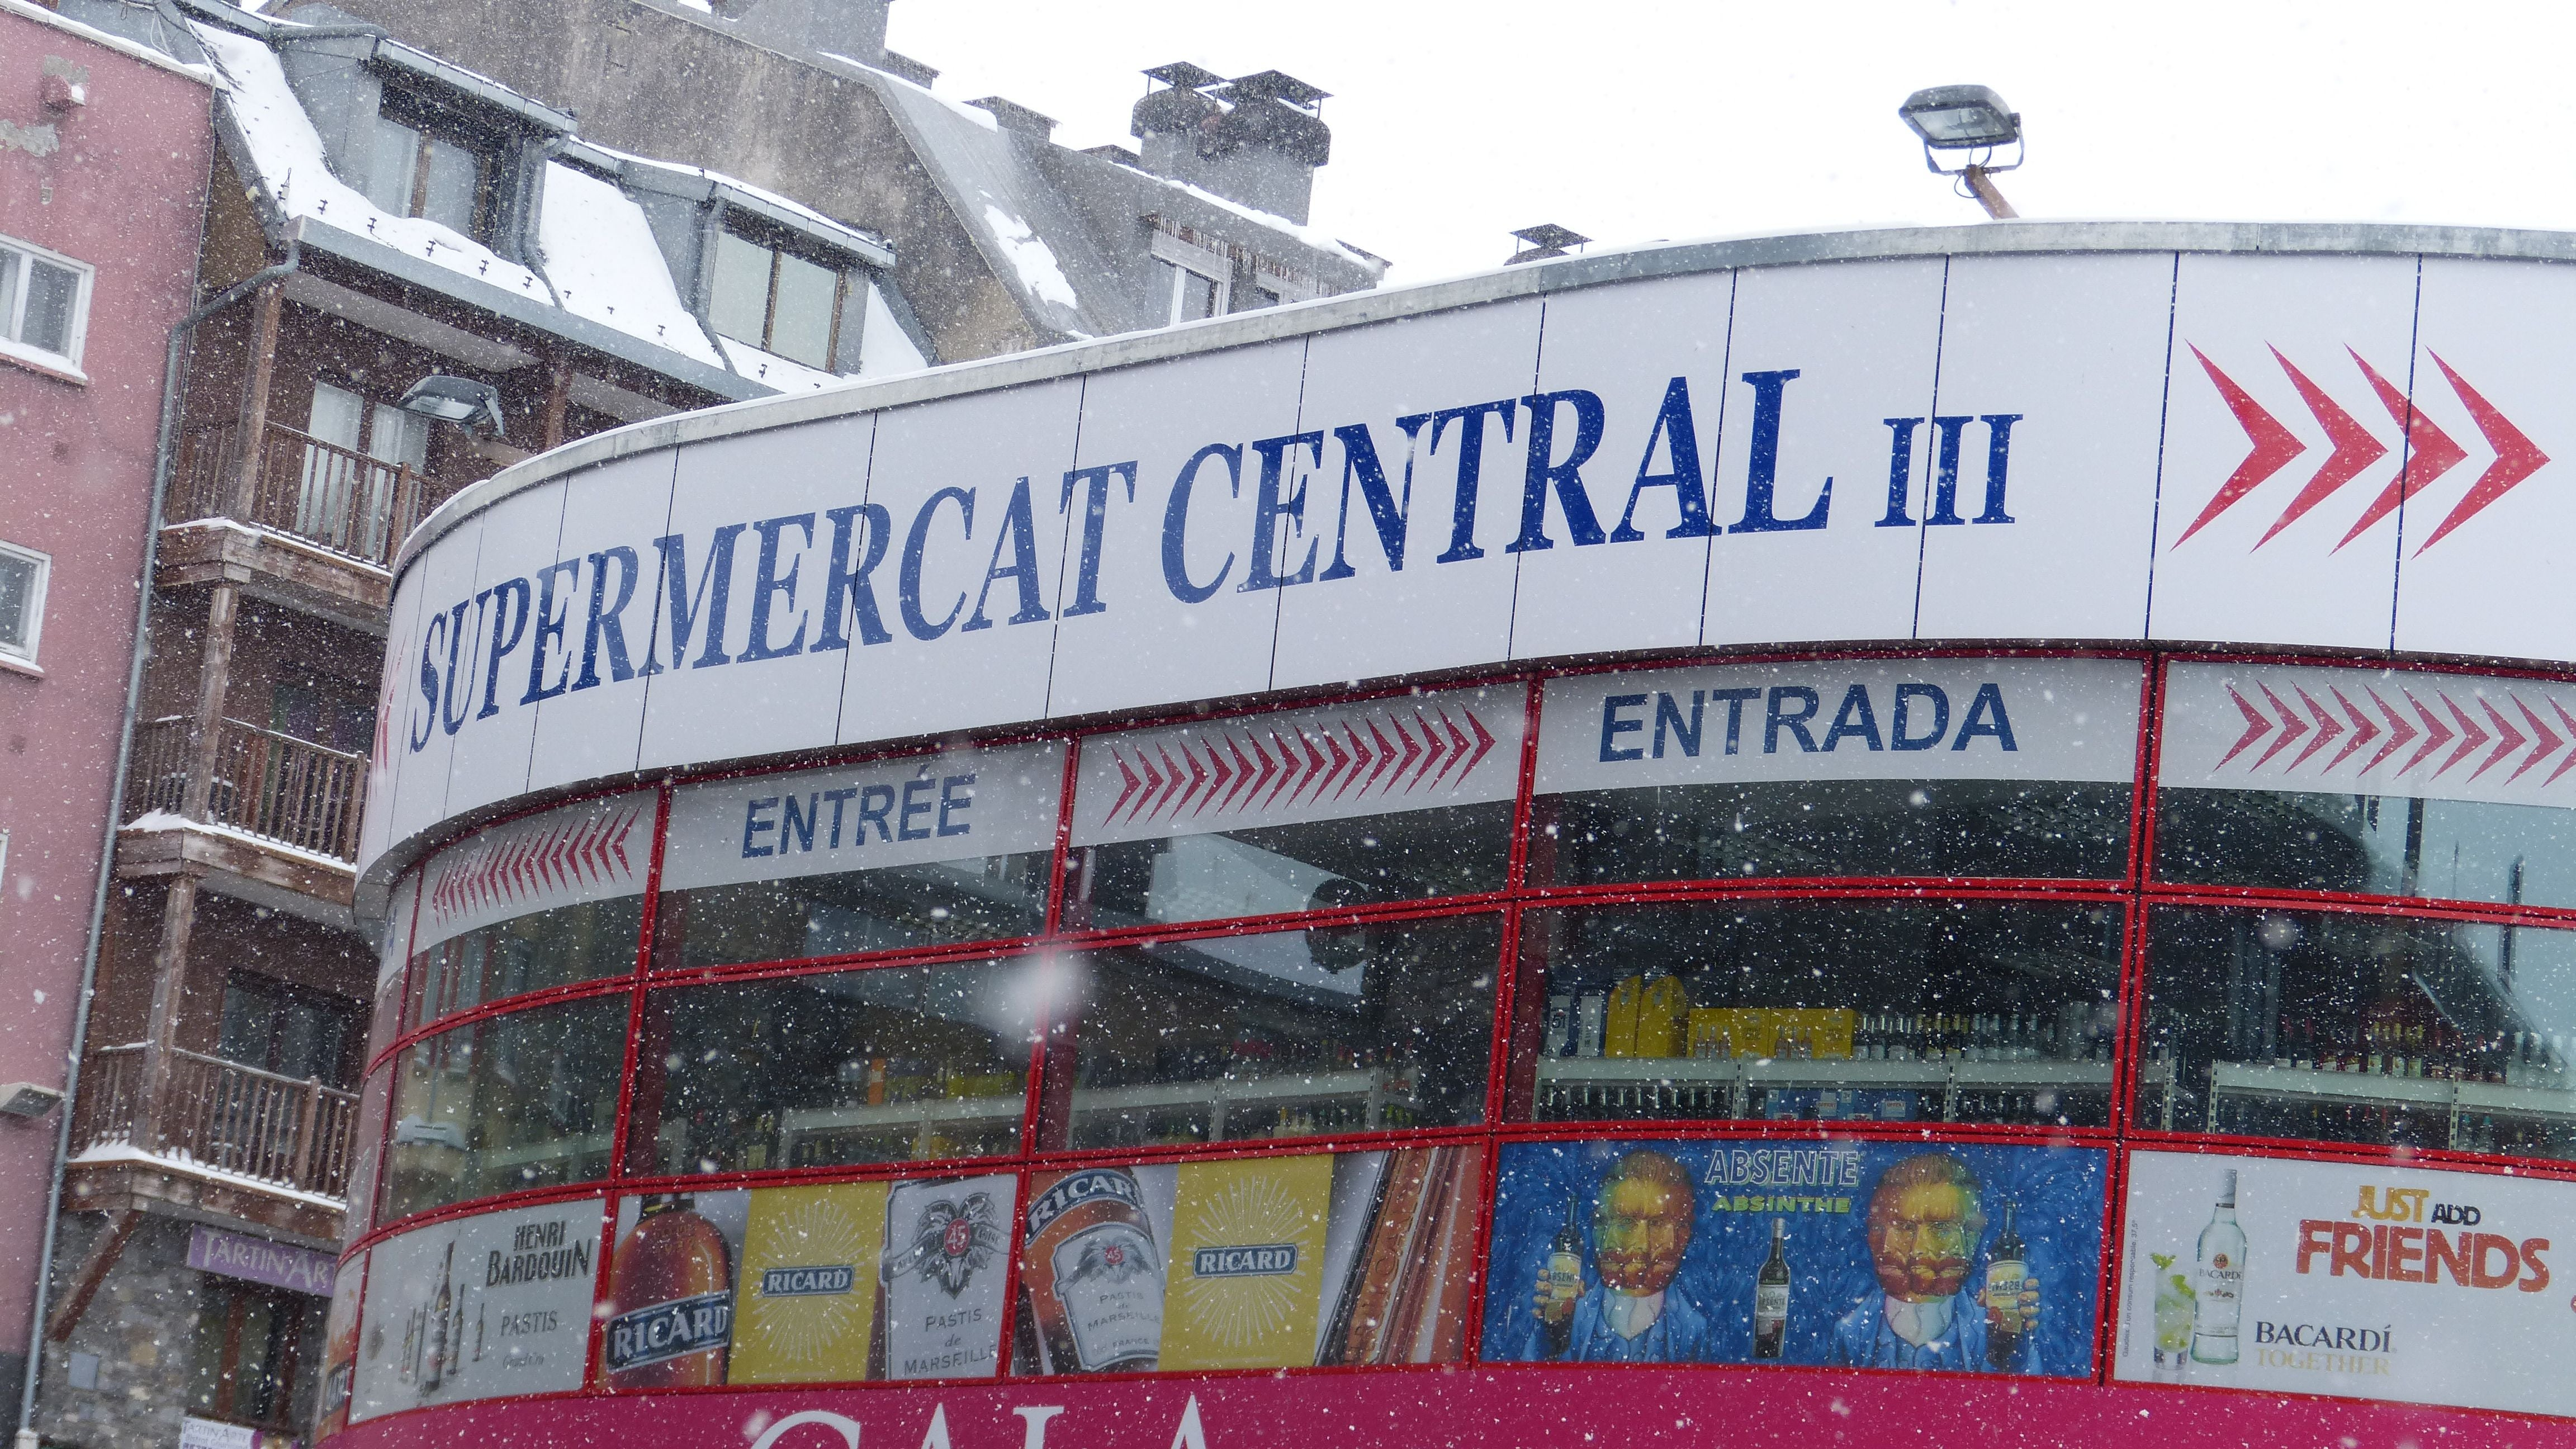 Signage in Supermercado Central III